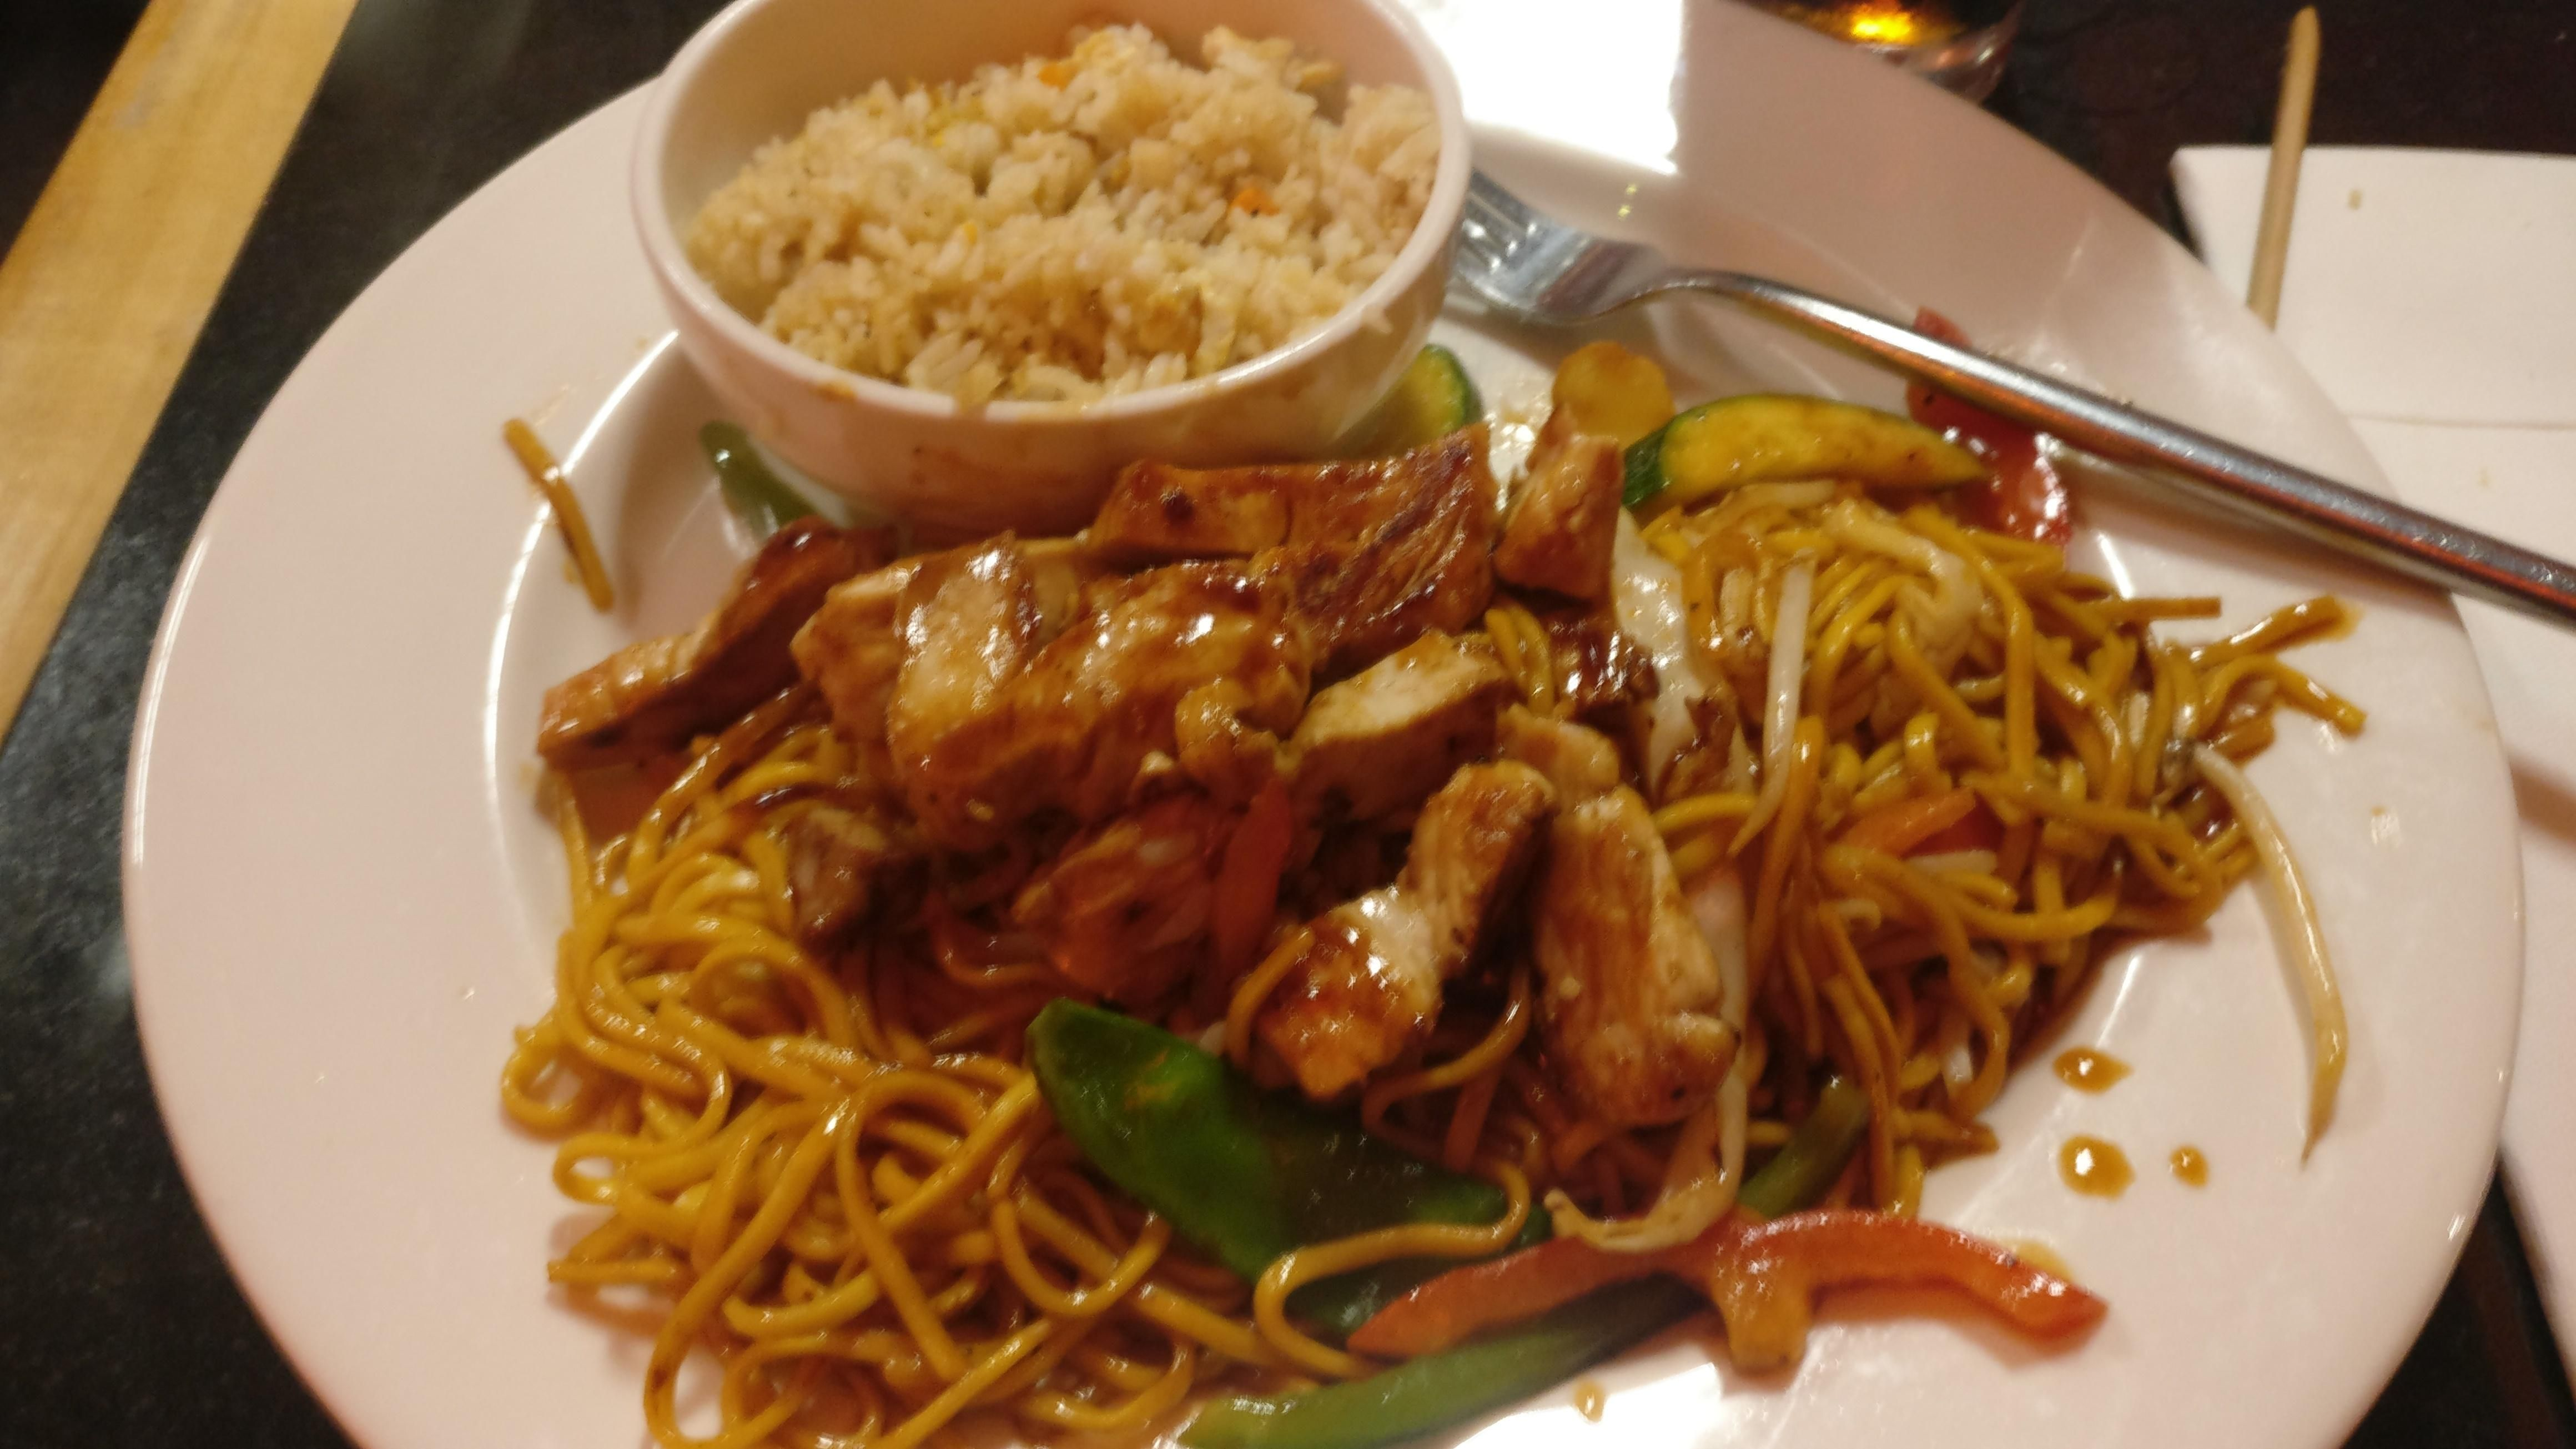 I ate japanese chicken yakisoba noodles recipes food cooking i ate japanese chicken yakisoba noodles recipes food cooking delicious foodie foodrecipes cook recipe health forumfinder Choice Image